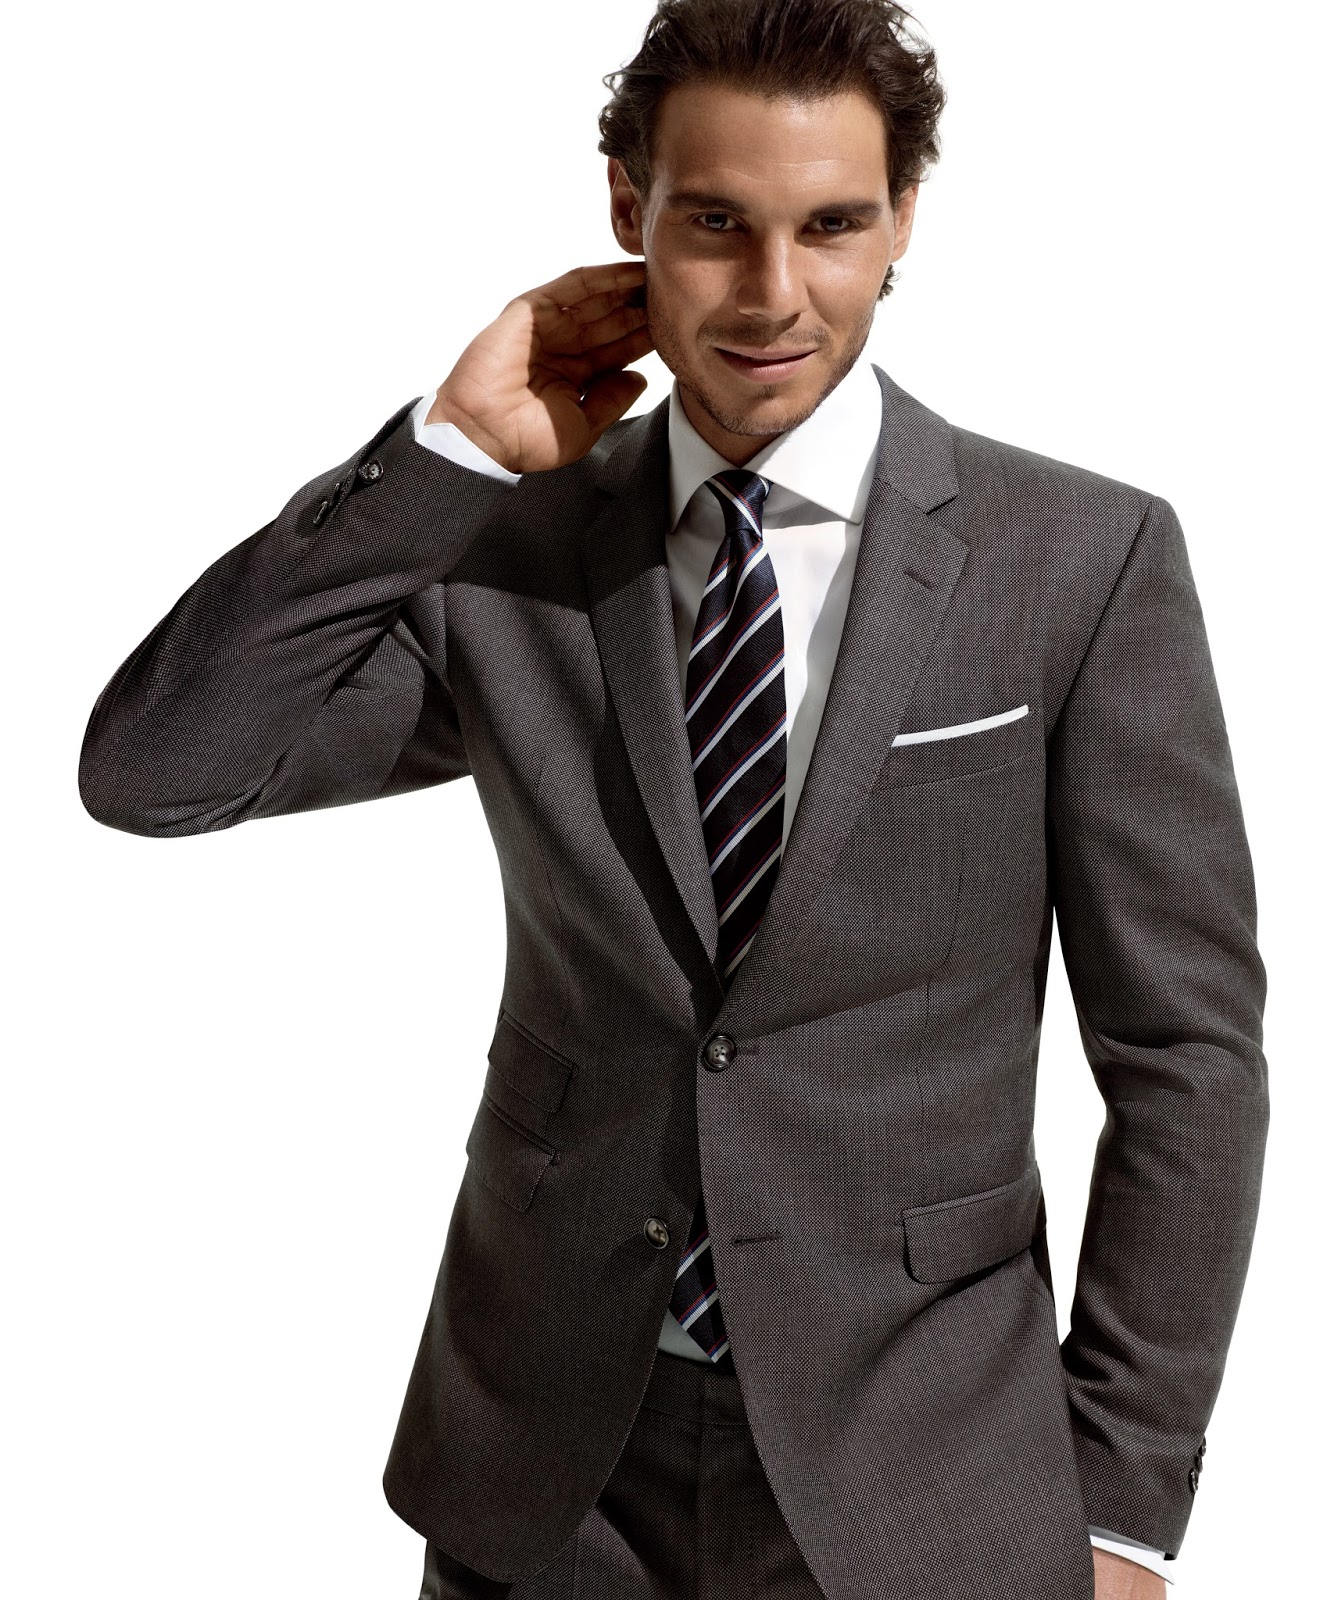 Tommy Hilfiger And Rafael Nadal Introduce TH Flex Suit Collection